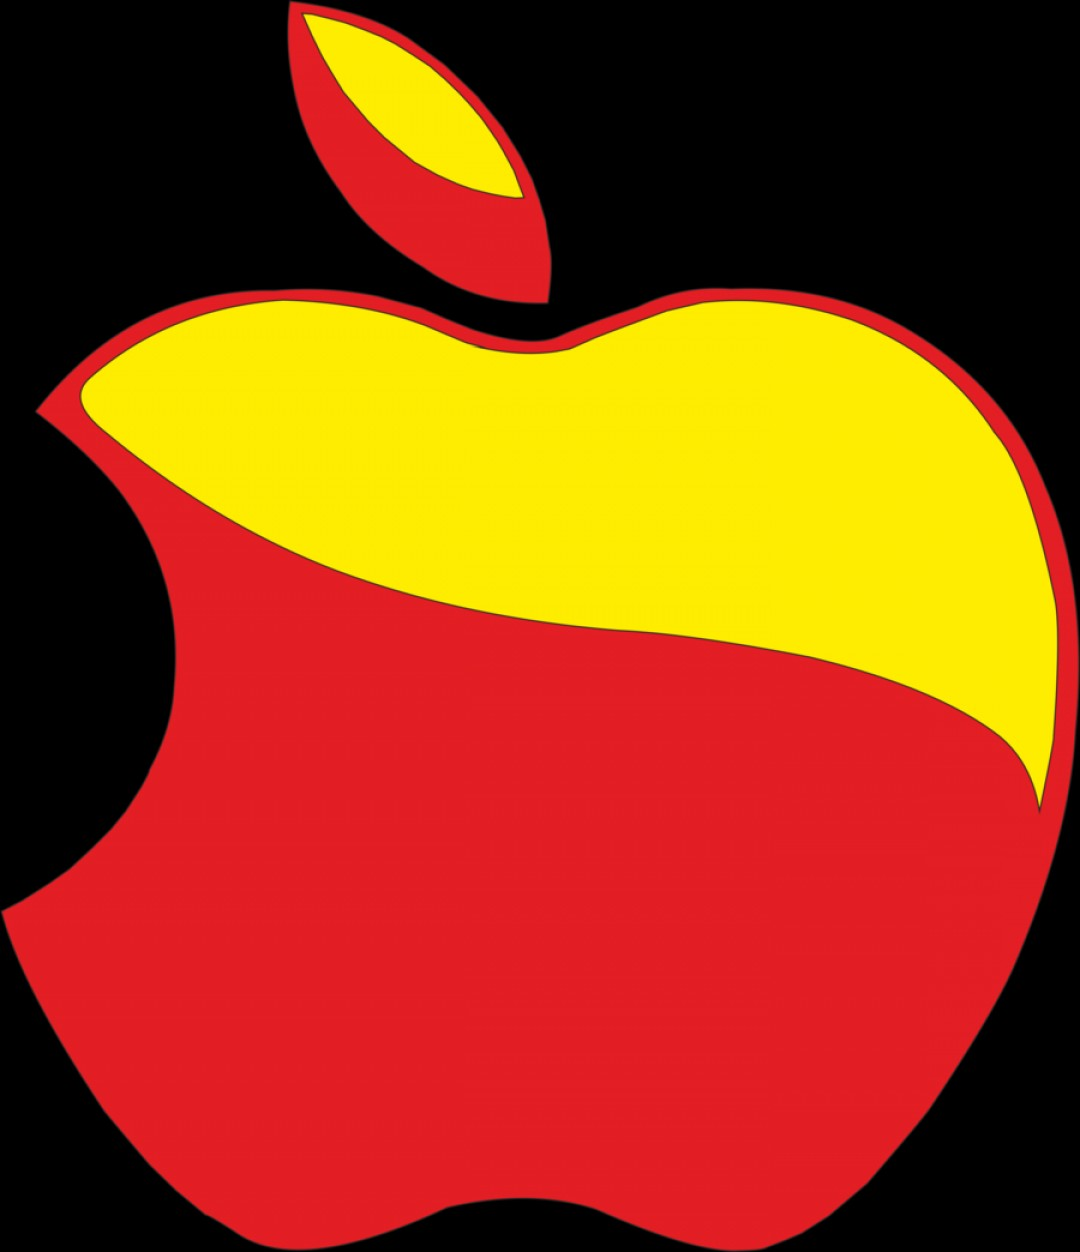 Red Apple Vector Logo: Apple Logo Red And Yellow